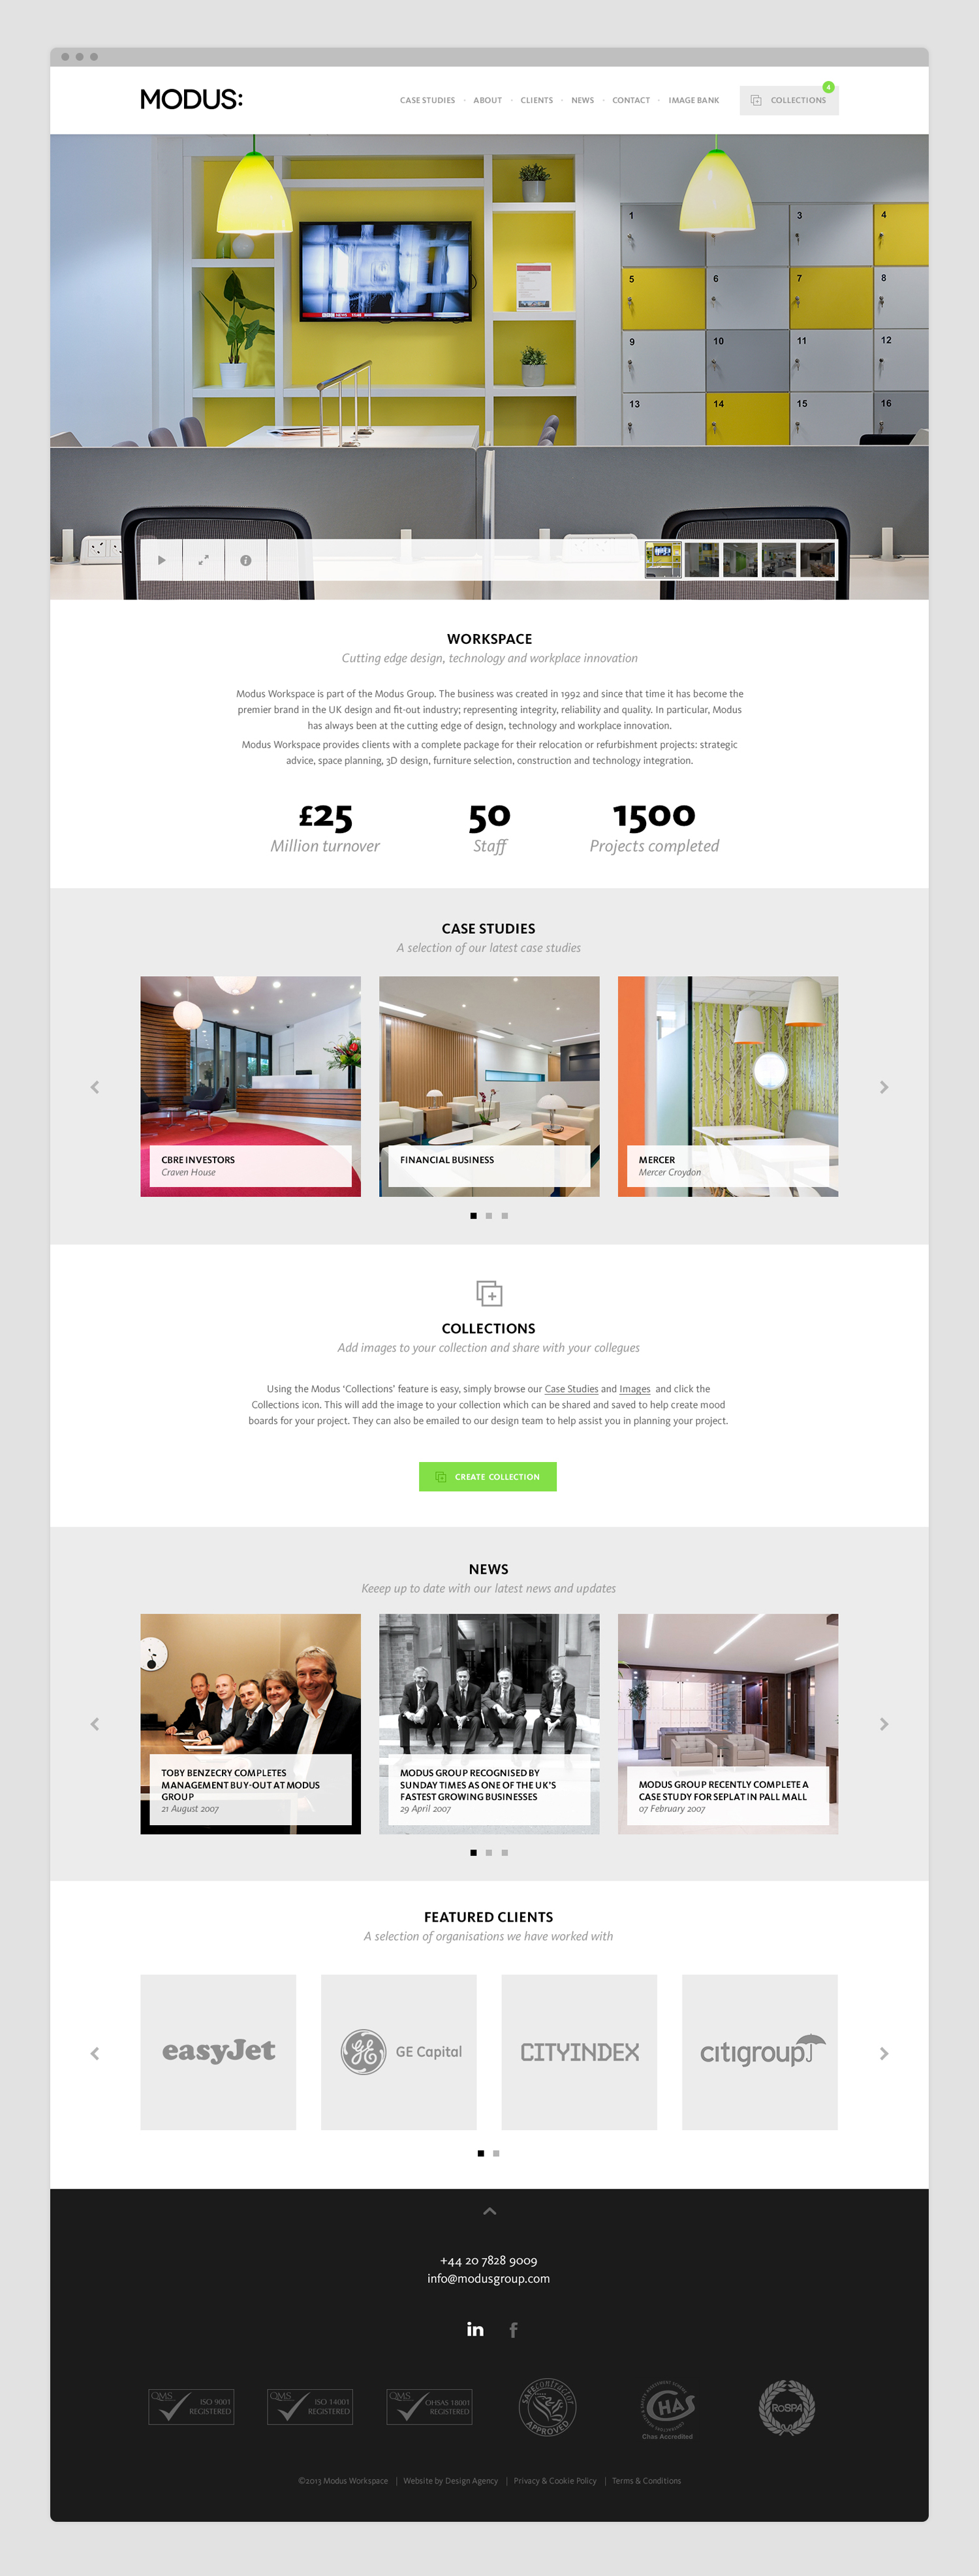 modus-websitedesign